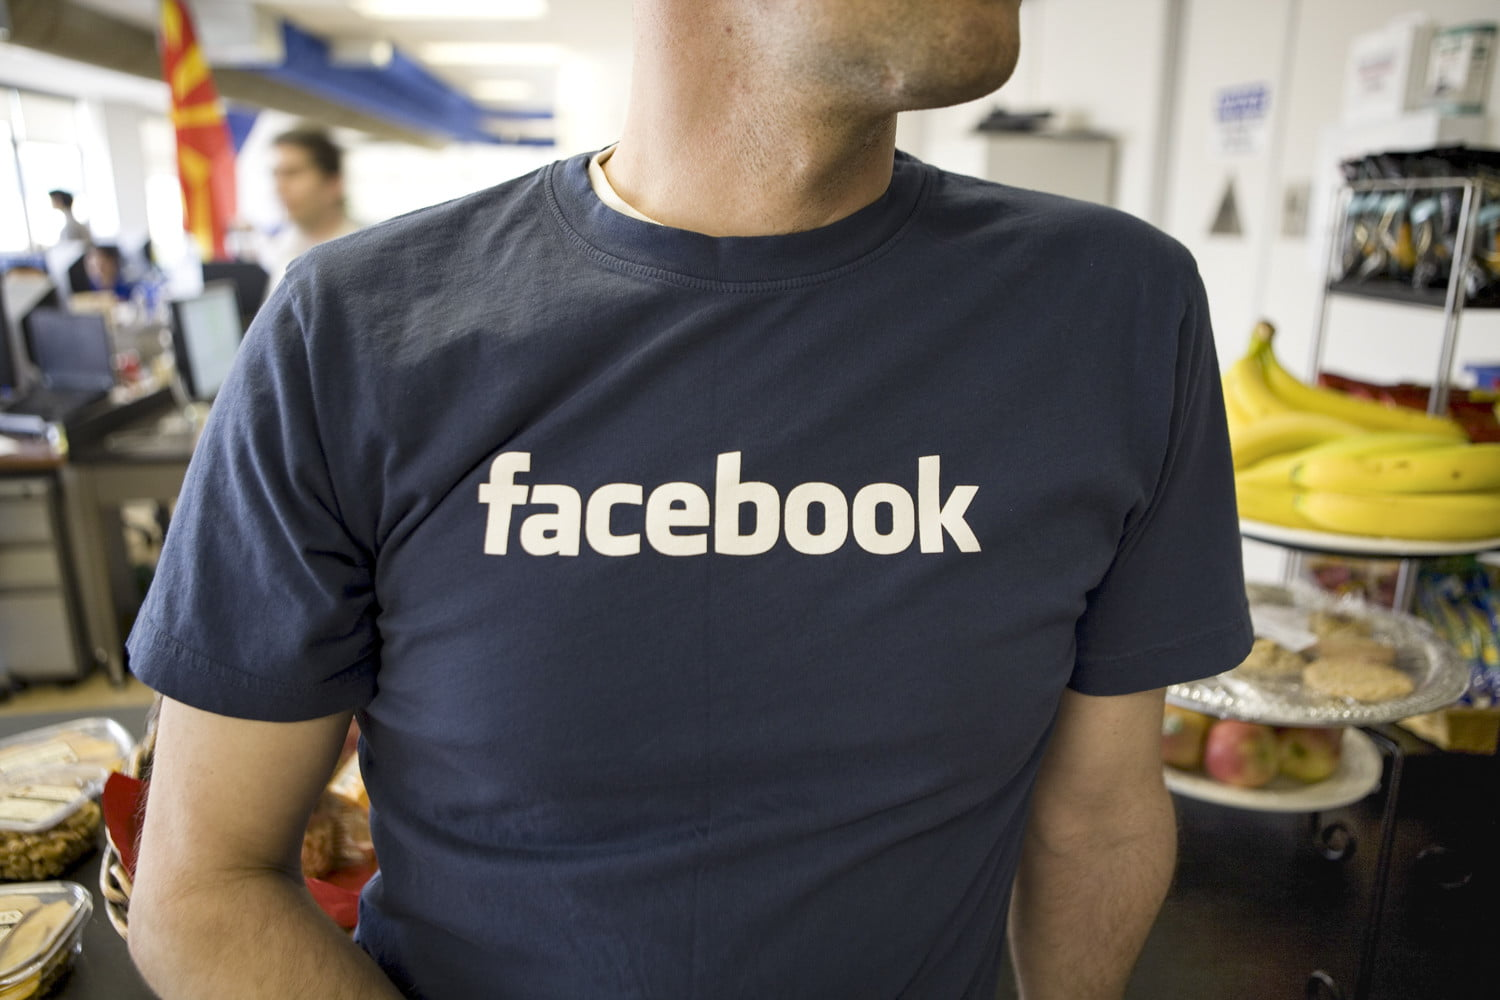 Facebook's Long-awaited Clear History Tool Coming This Year